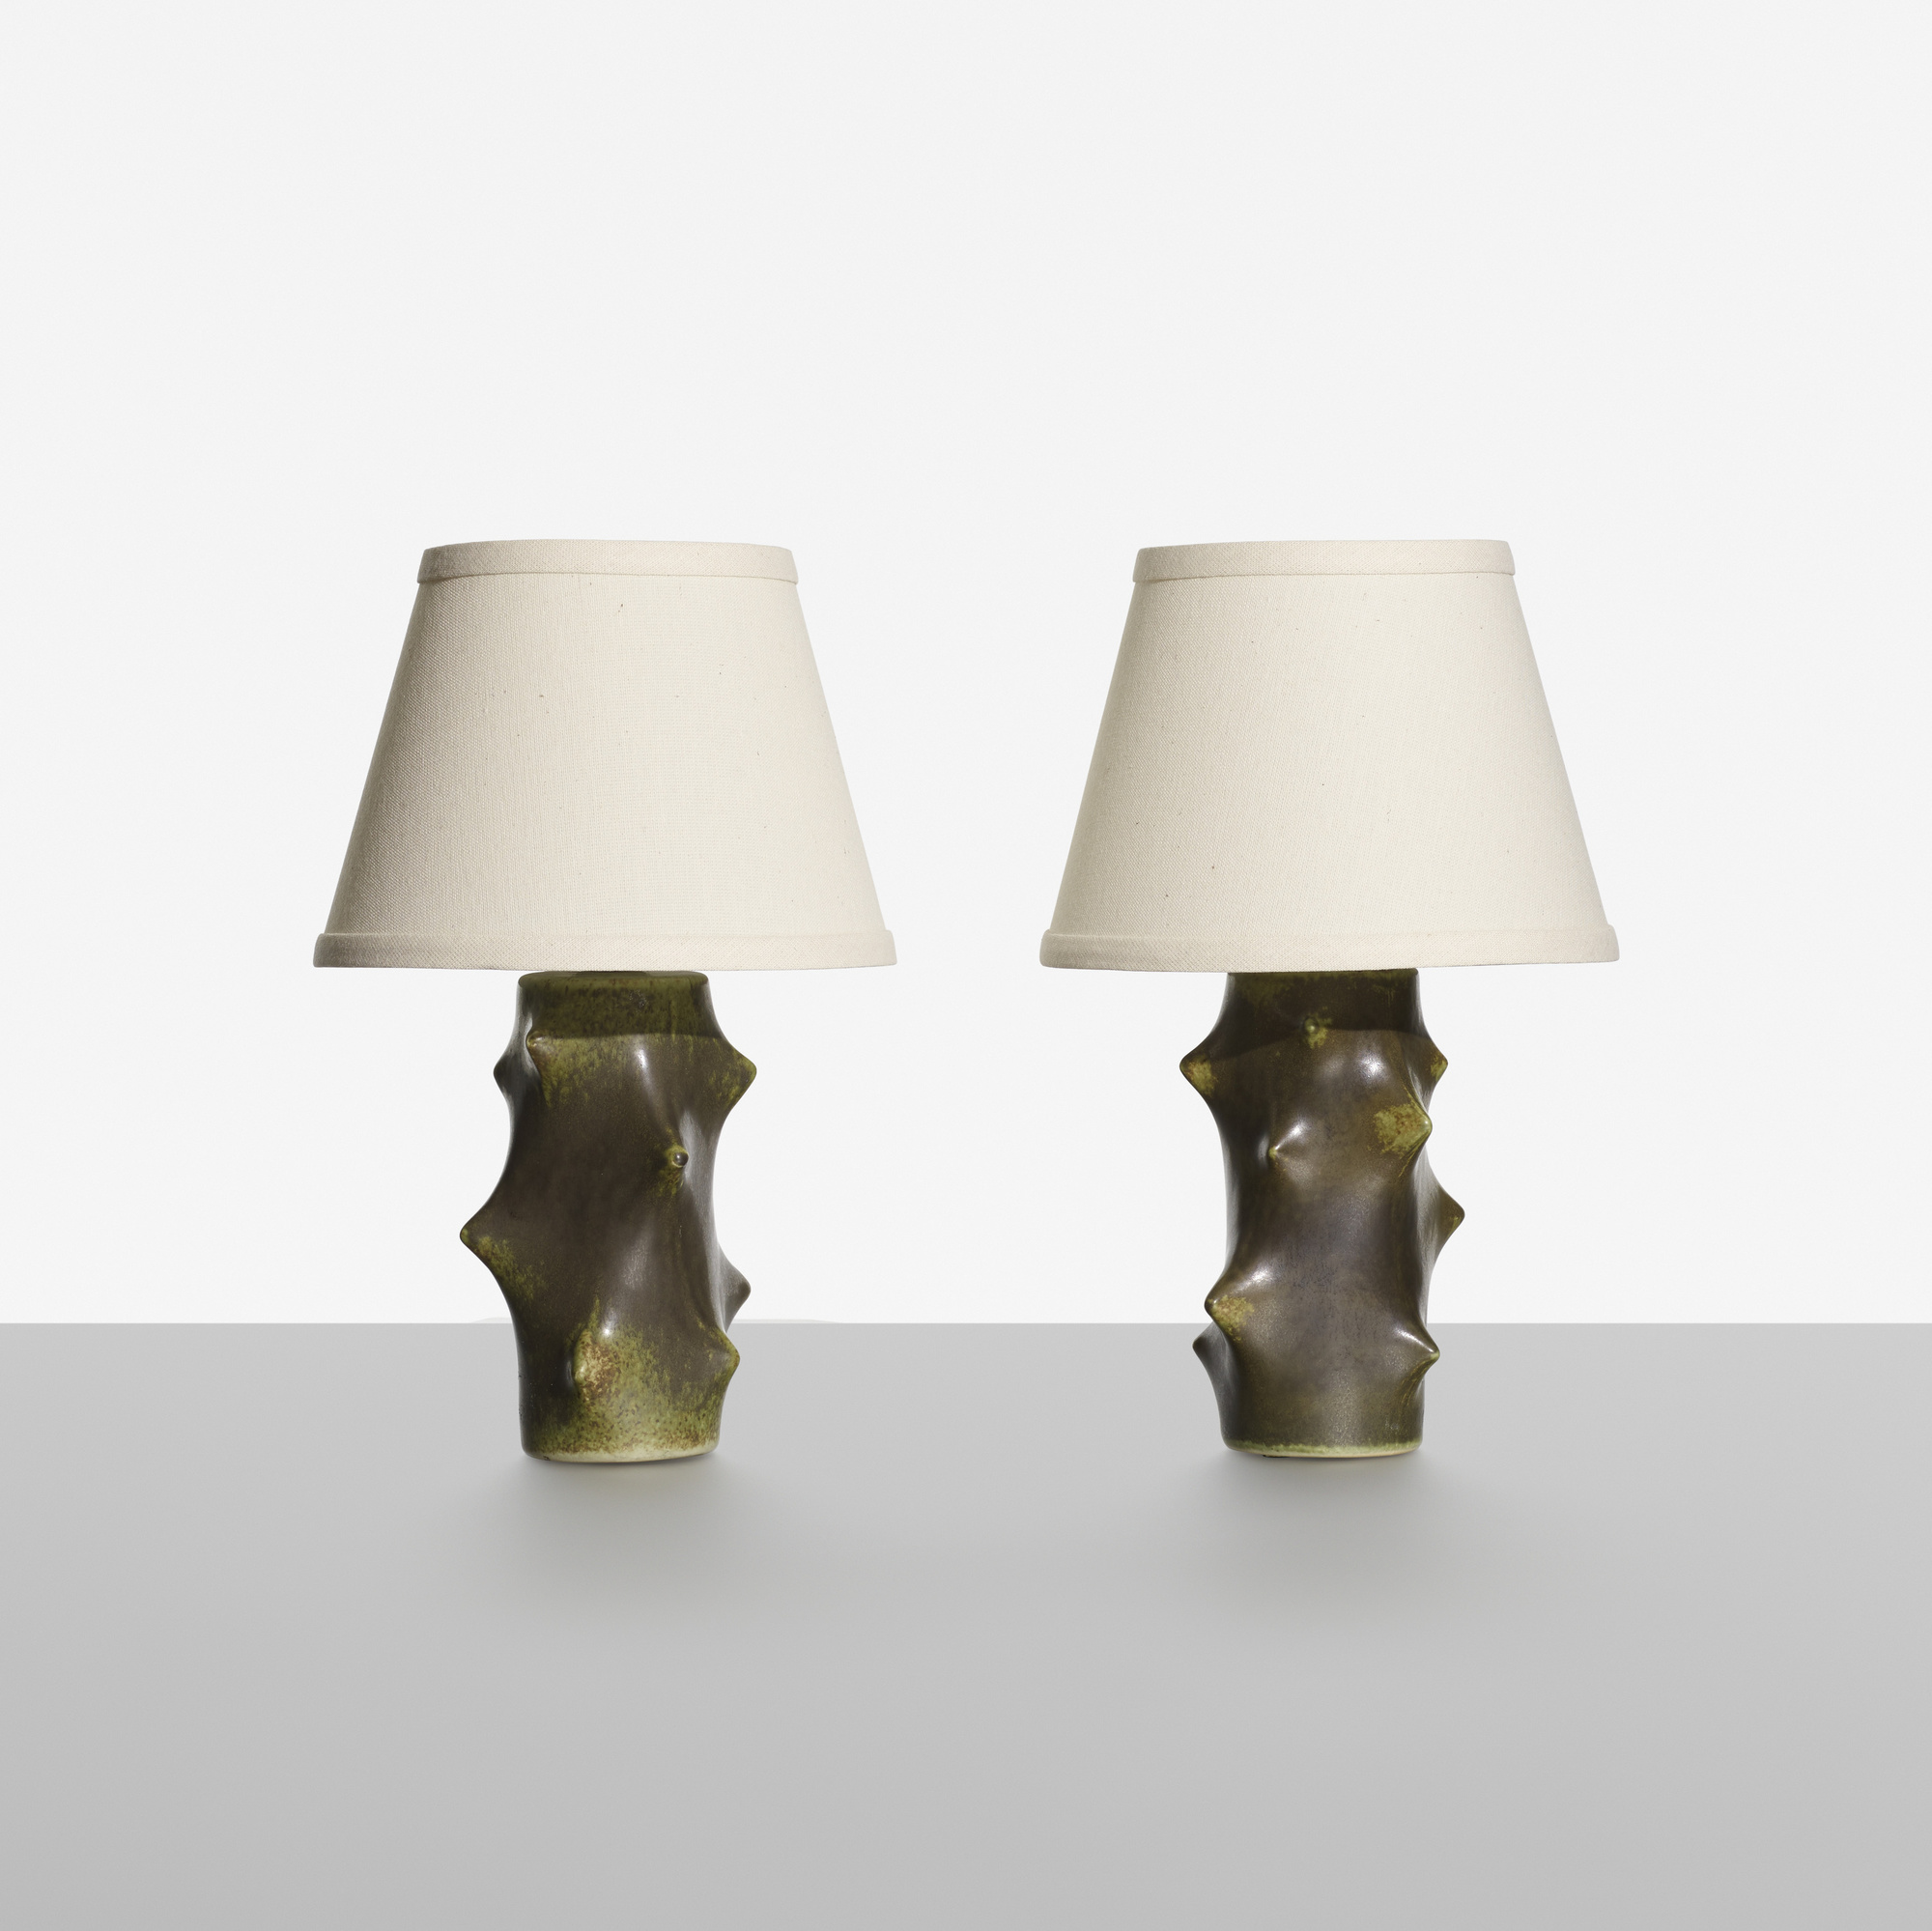 206: Knud Basse / Table Lamps, Pair (1 Of 2)